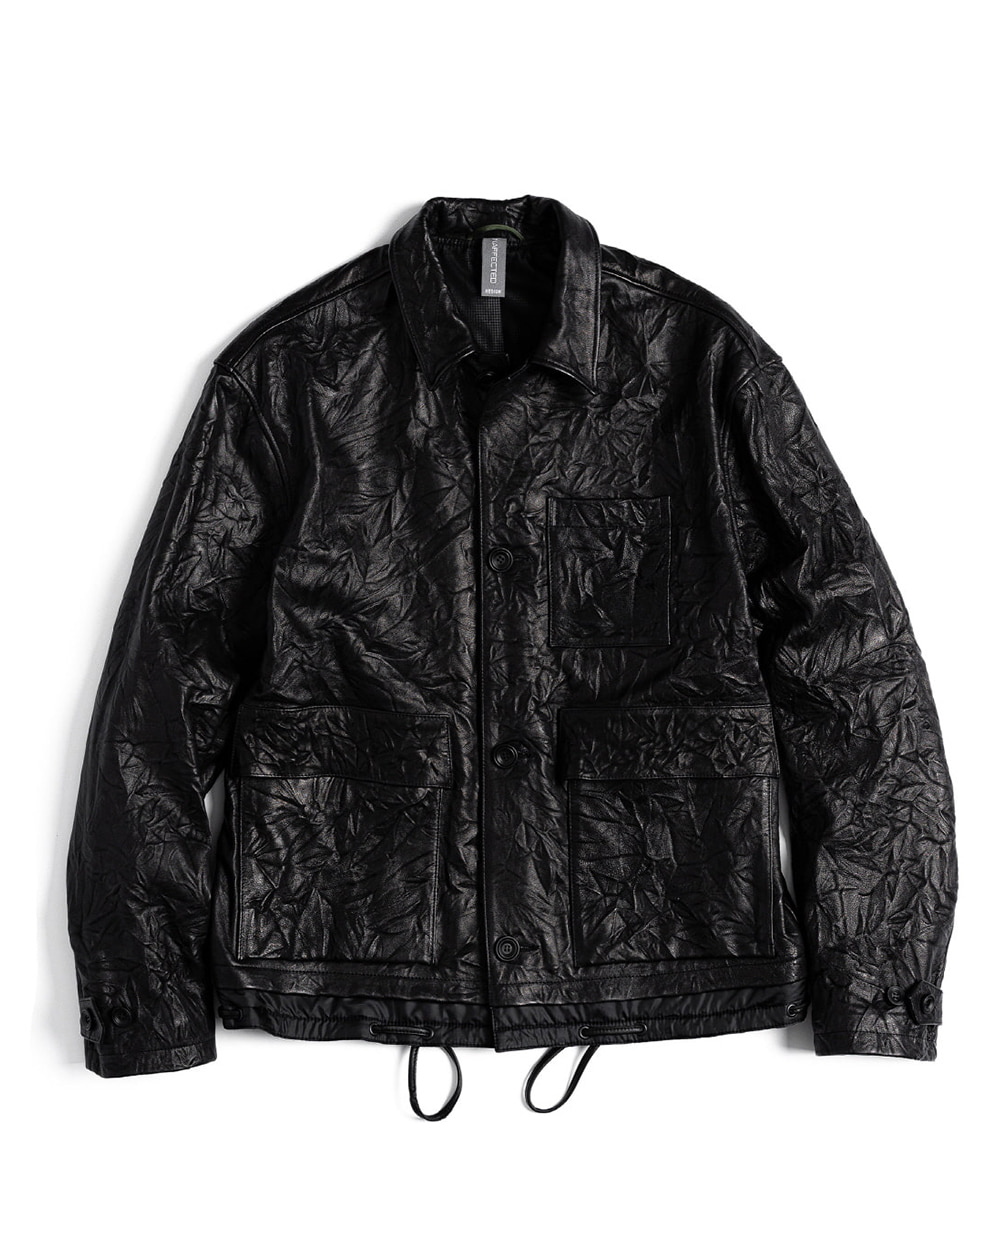 언어펙티드 CONTRAST PANEL LEATHER JACKET (Black)